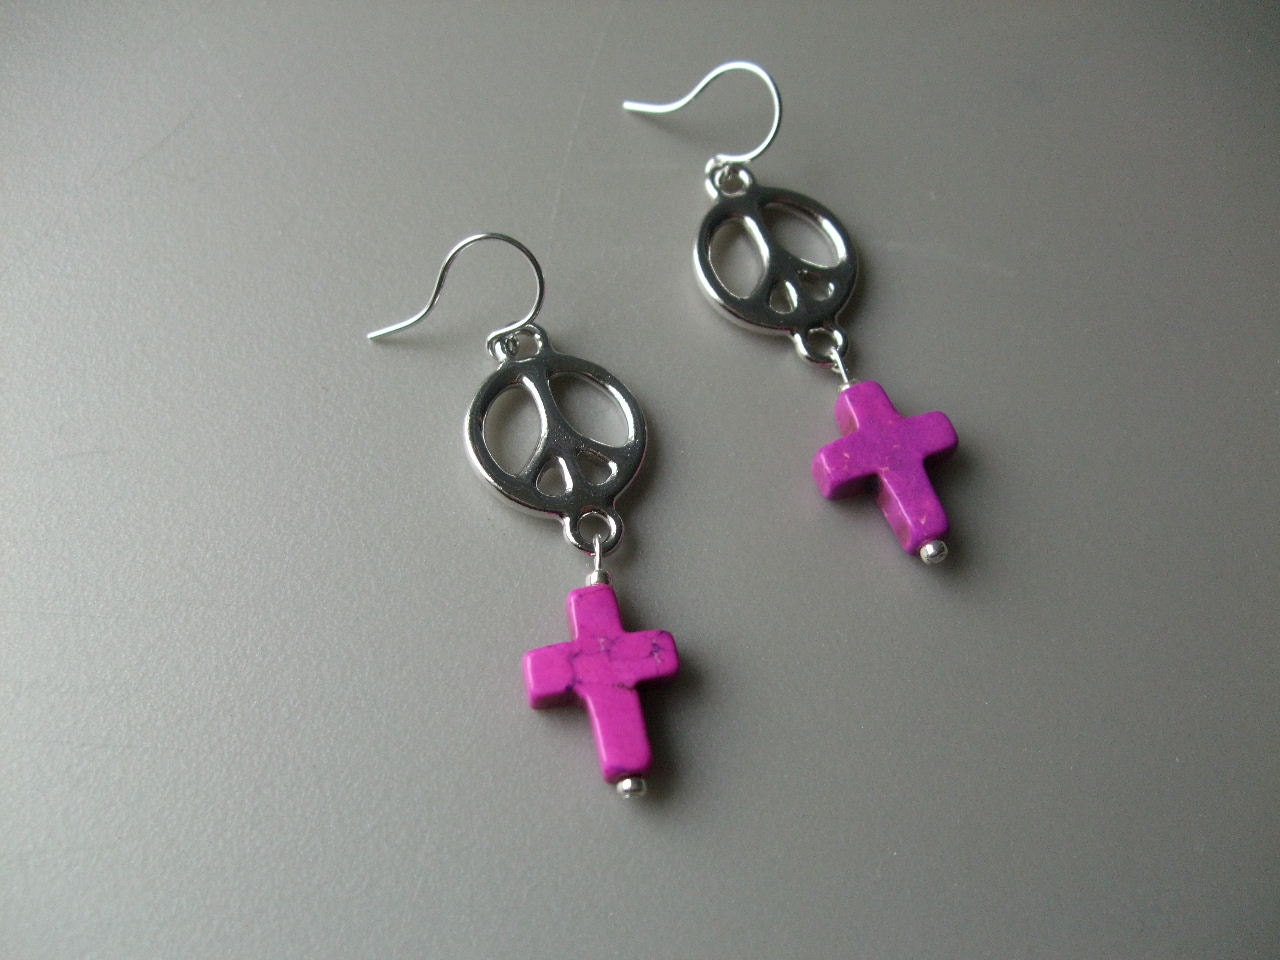 Silver peace sign and purple cross earrings